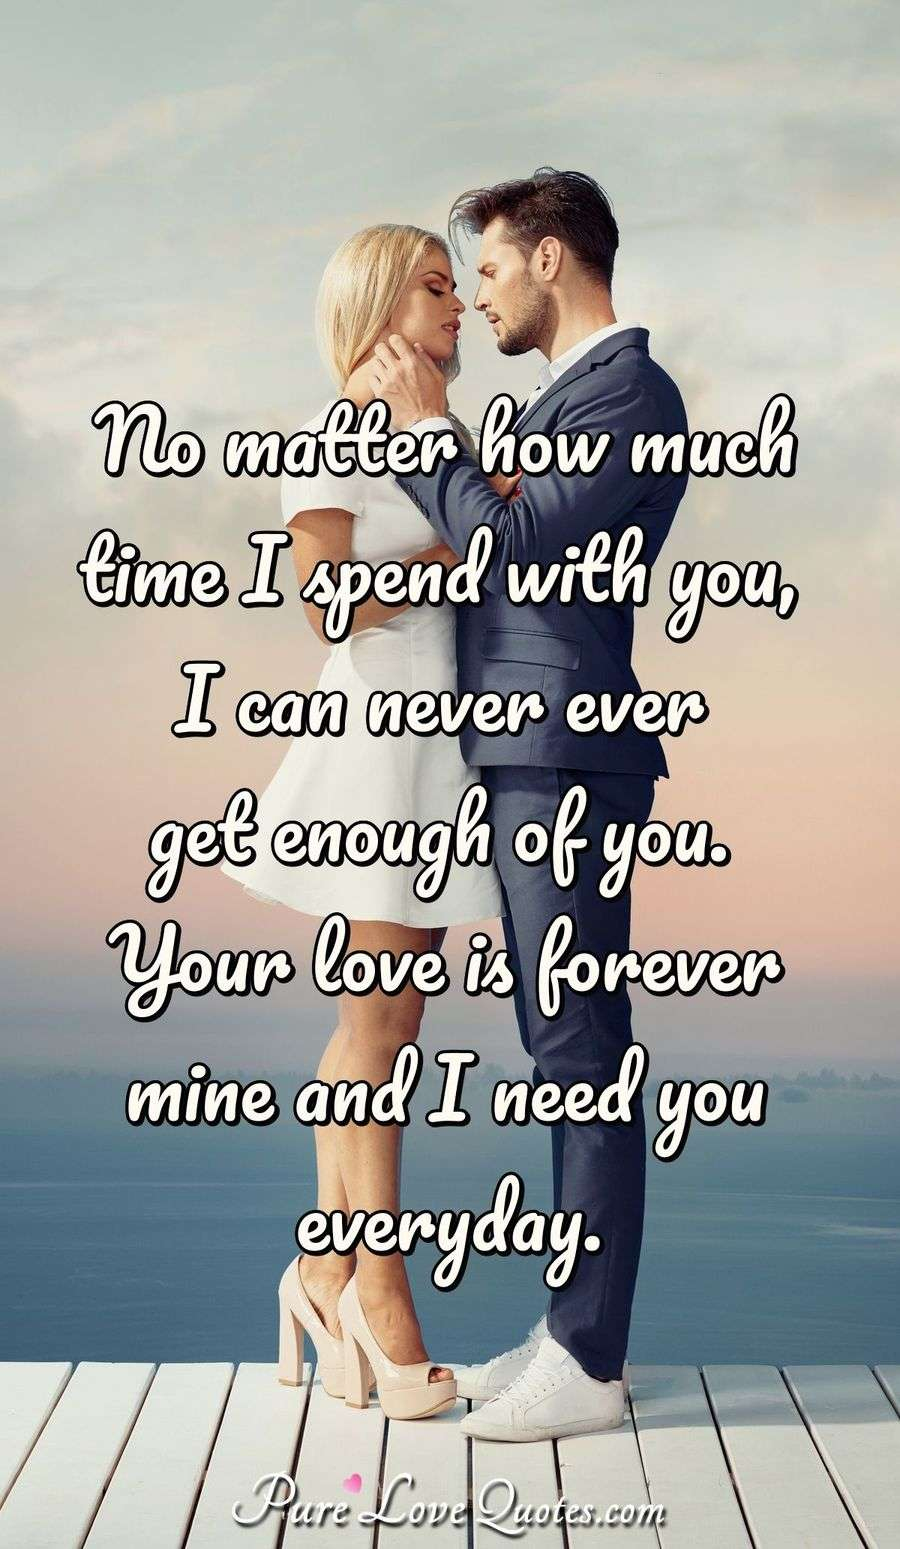 Time Quotes For Her: No Matter How Much Time I Spend With You, I Can Never Ever